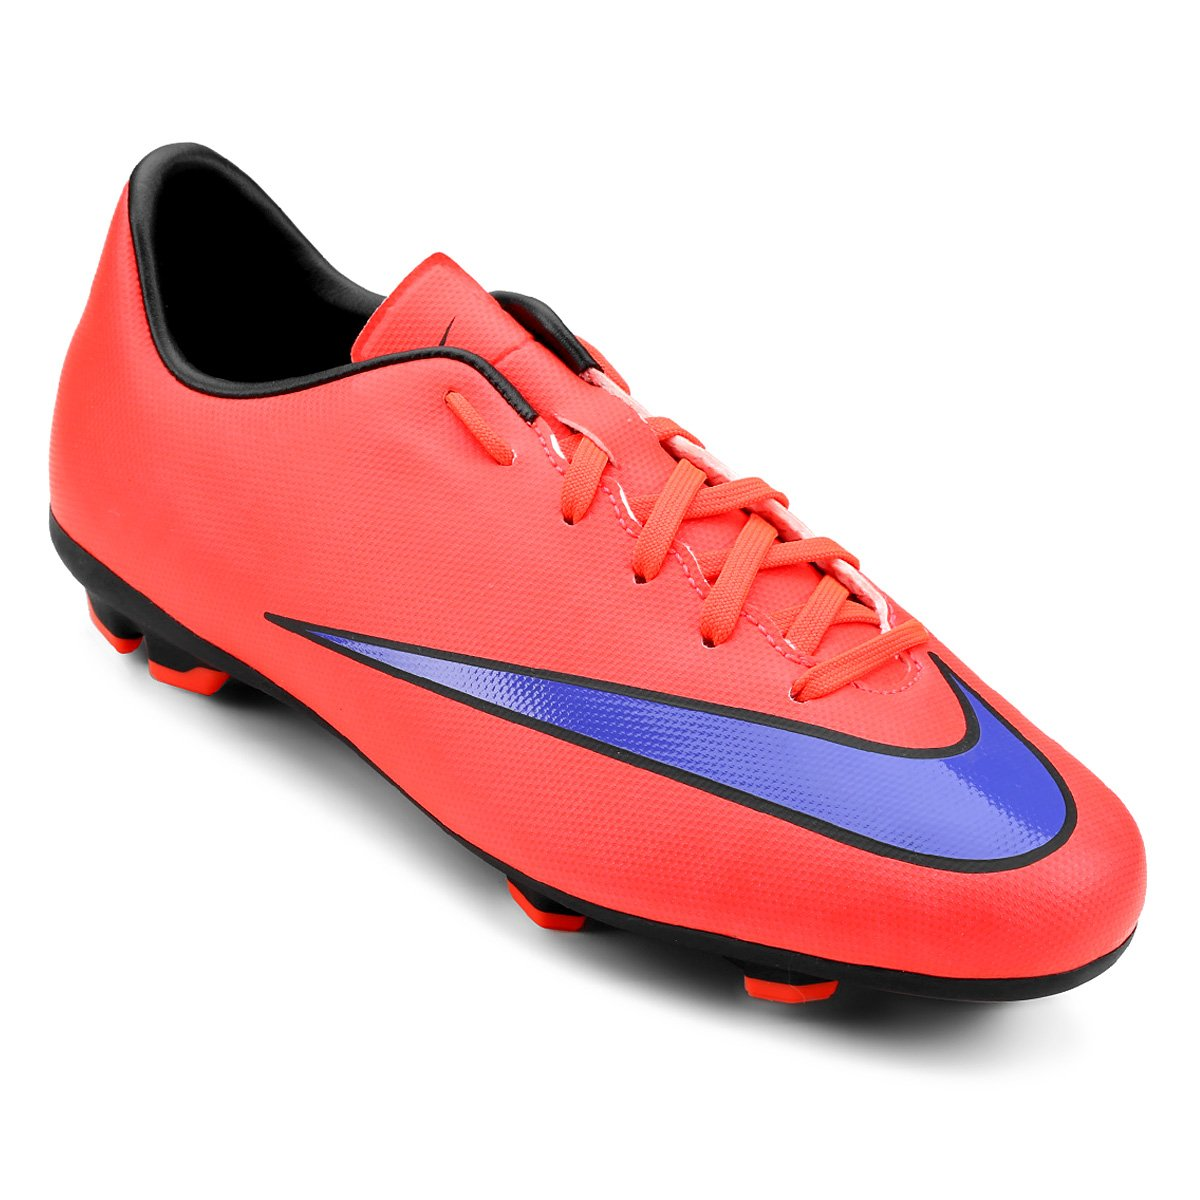 ... low cost chuteira nike mercurial victory 3 ic mercadolivre chuteira  campo infantil nike mercurial victory 5 bda170d11ff19